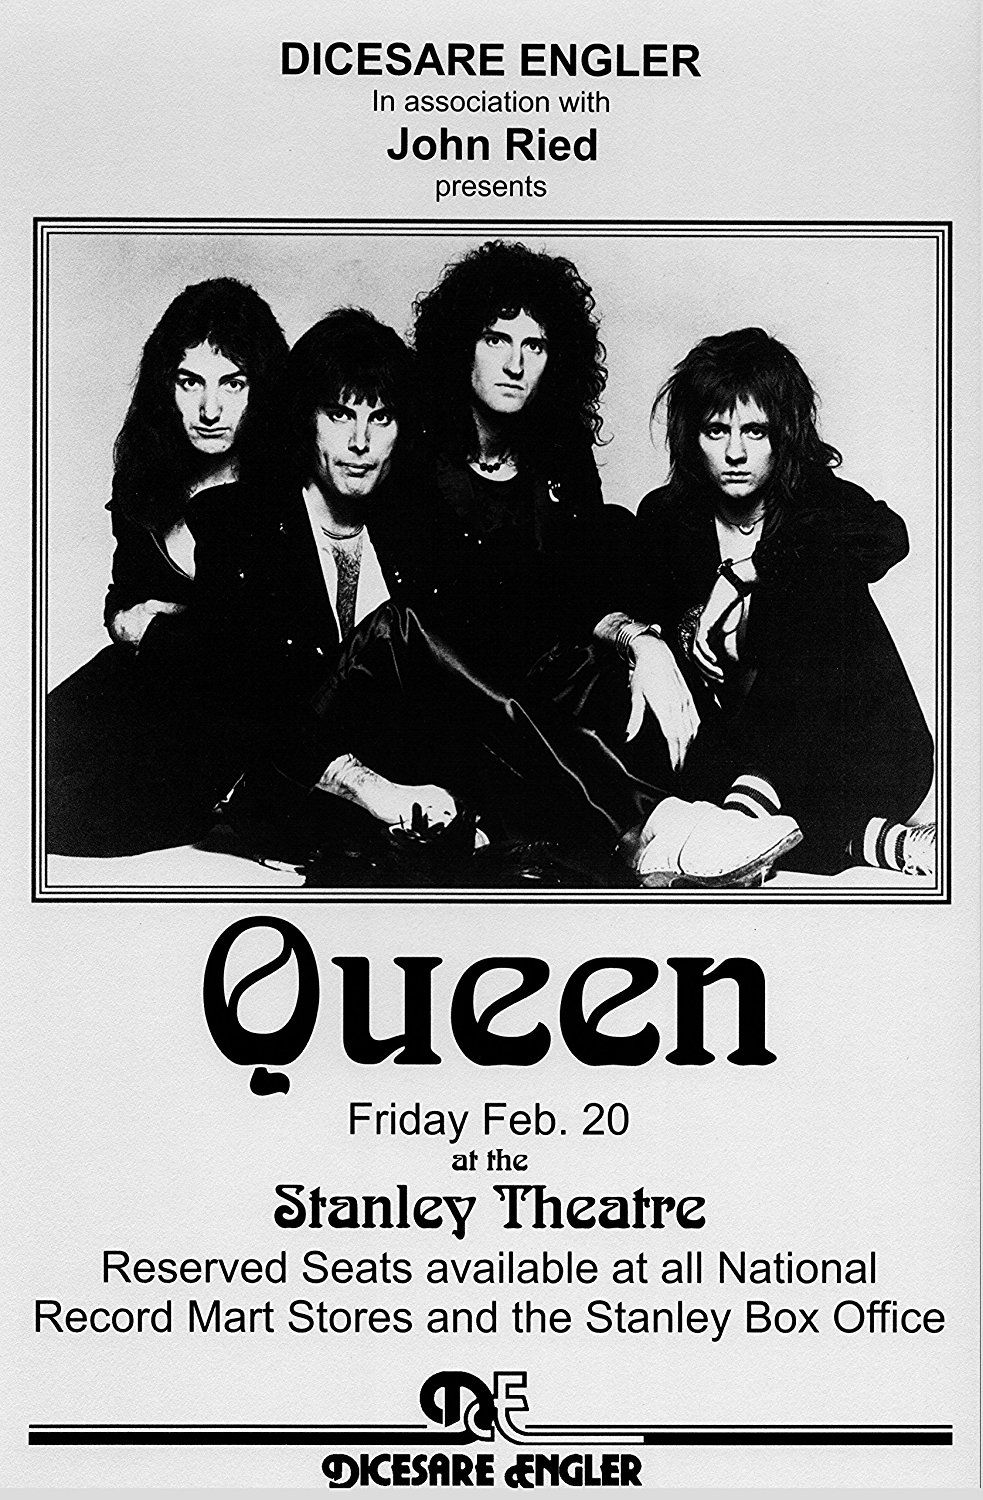 Queen A Night At The Opera Retro Art Print Poster Size Print Of Retro Concert Poster Featur Concert Posters Vintage Concert Posters Music Concert Posters